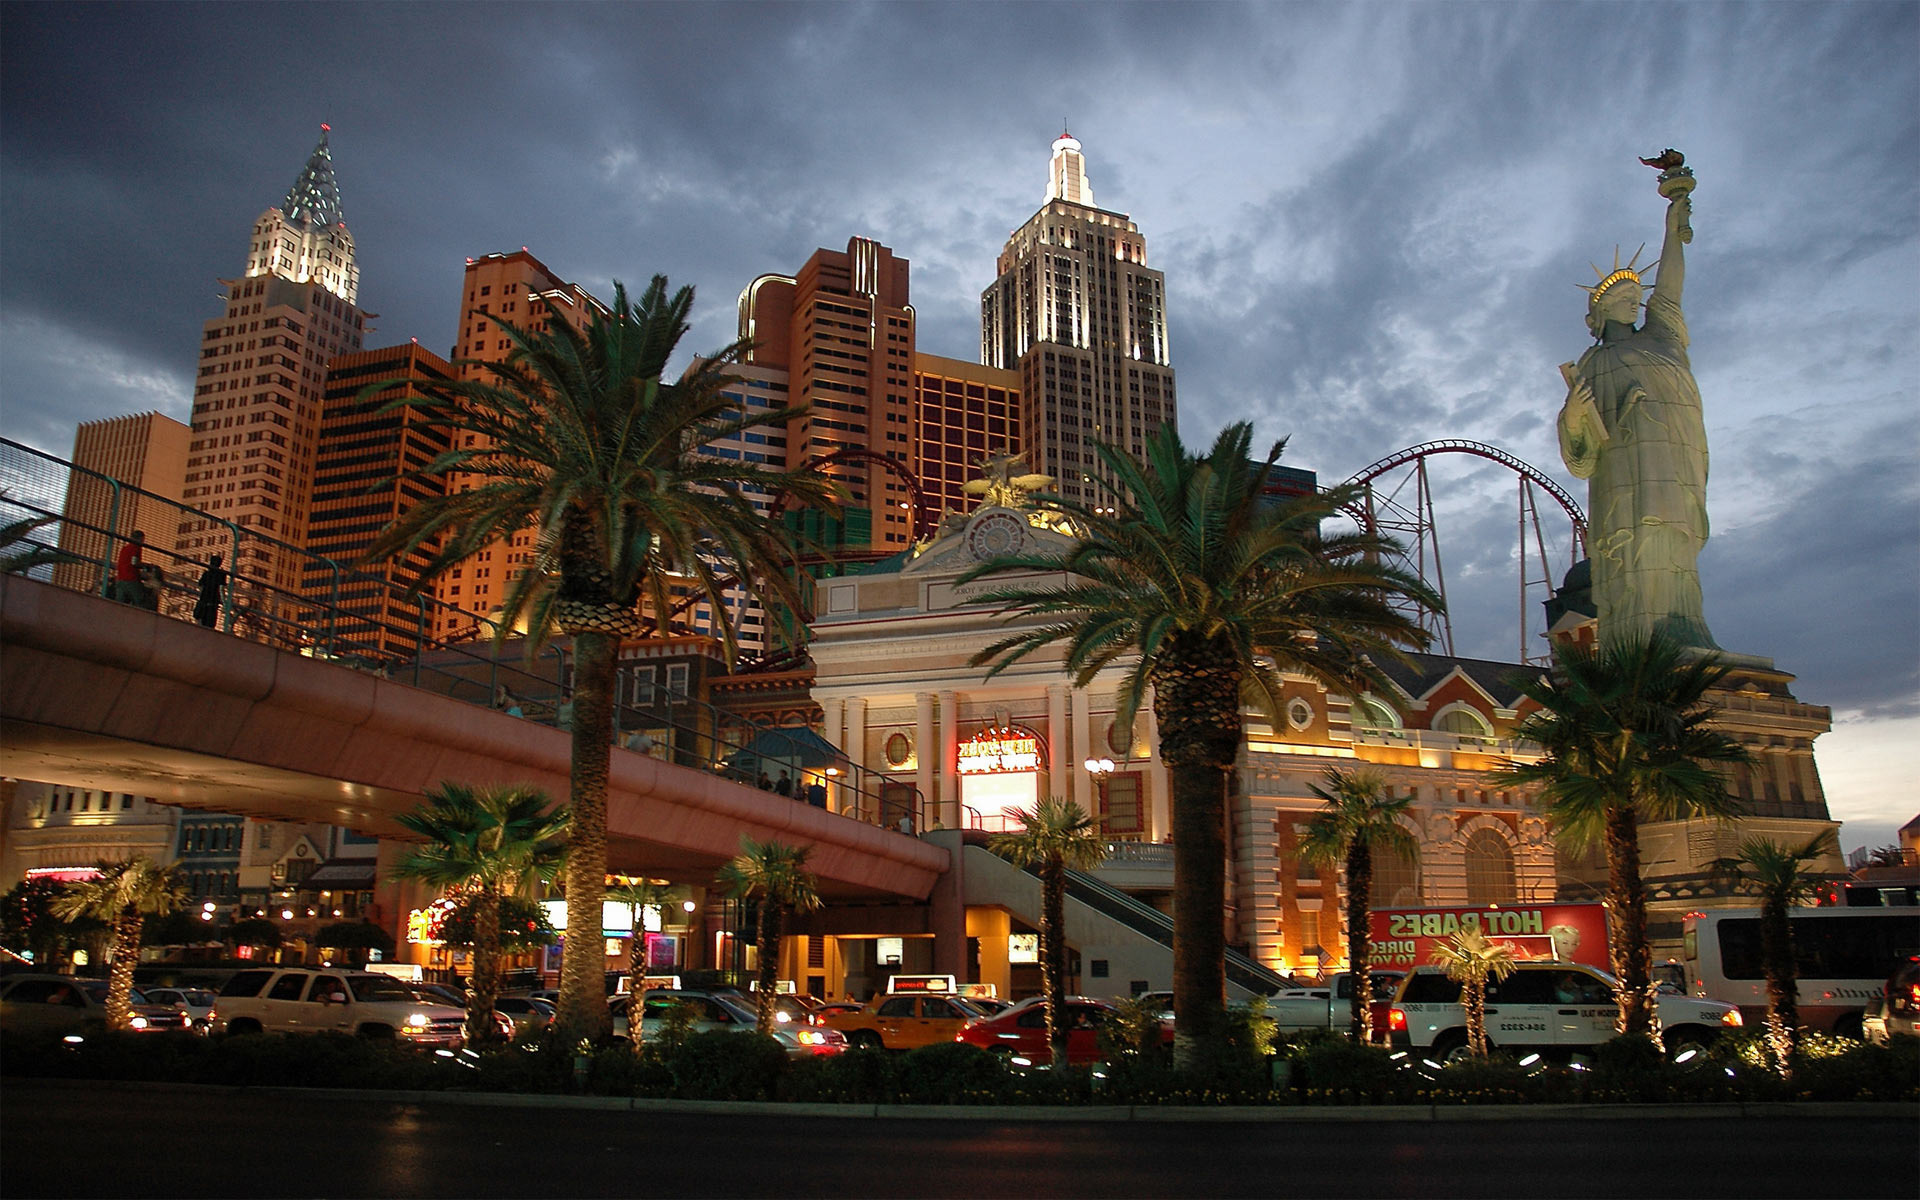 Las Vegas Wallpapers HD Backgrounds, Images, Pics, Photos Free 1920x1200